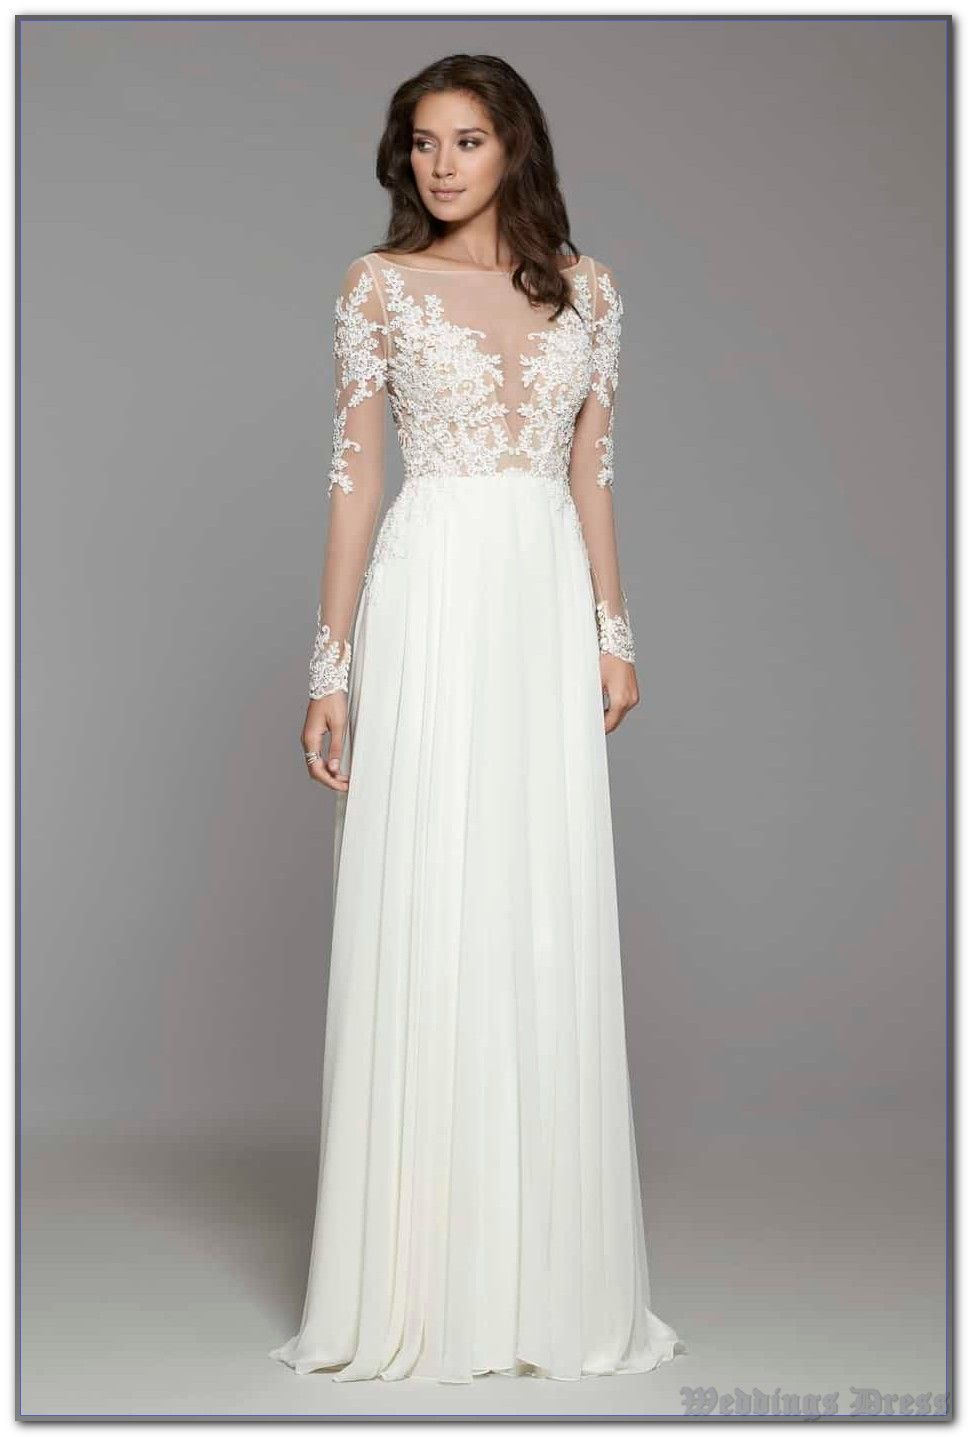 Use Weddings Dress To Make Someone Fall In Love With You